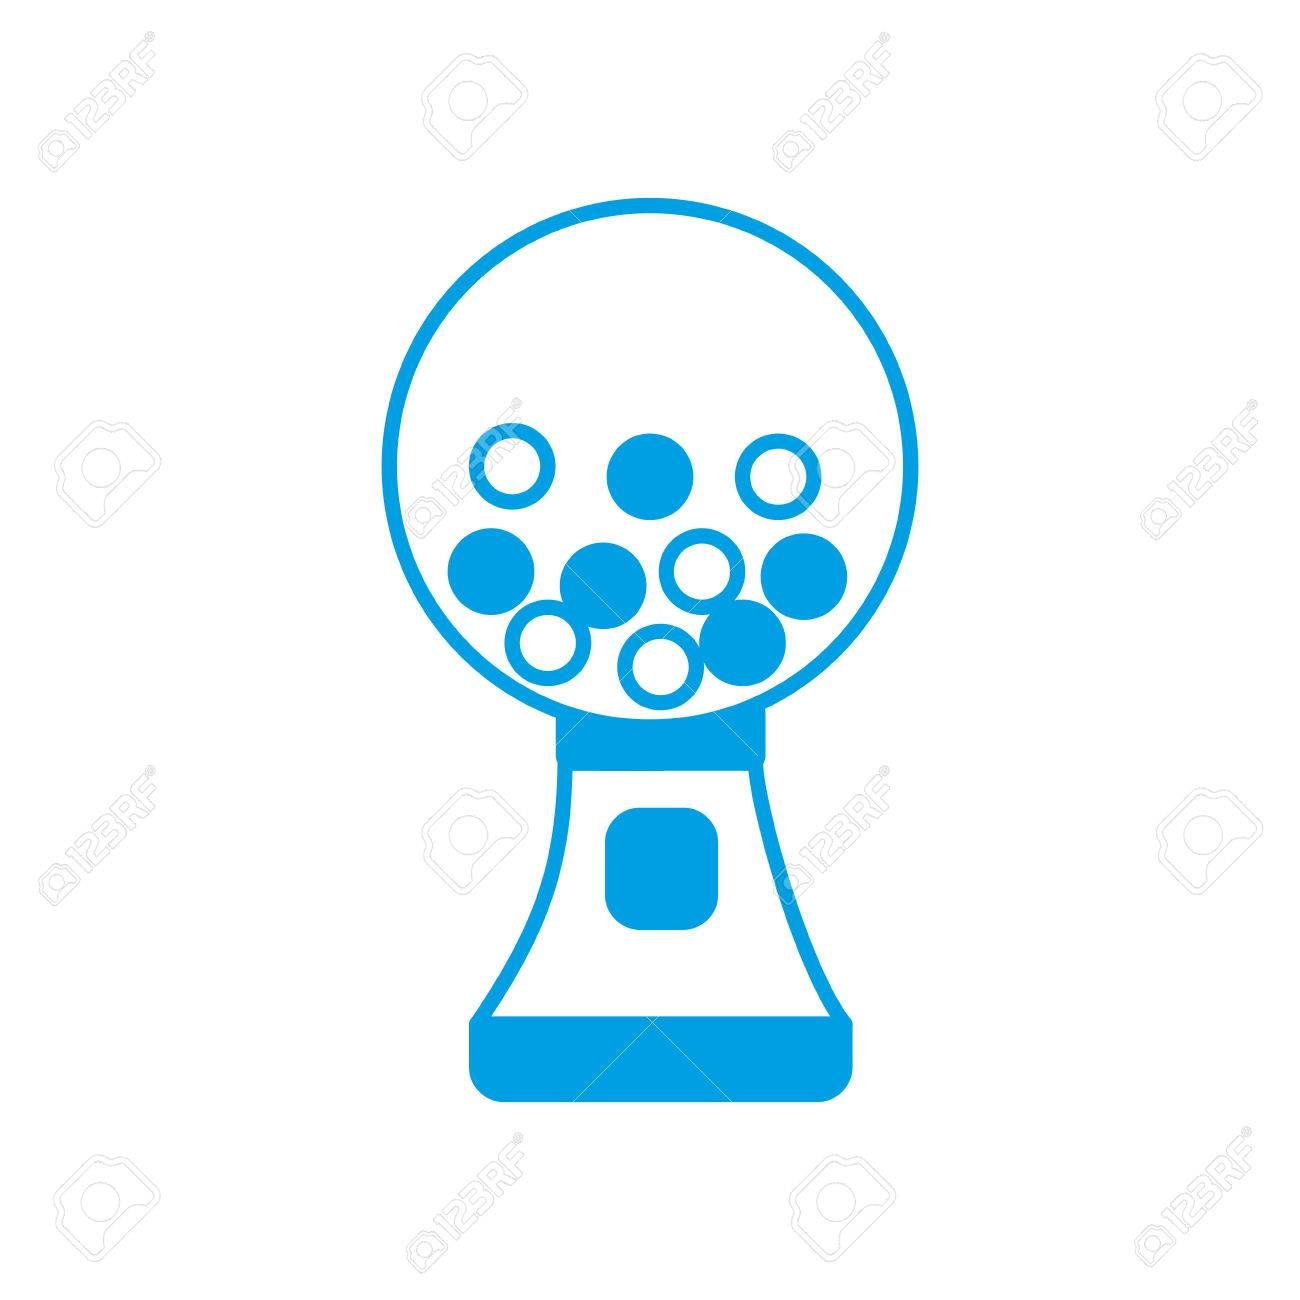 hight resolution of gumball machine icon over white background vector illustration stock vector 82762249